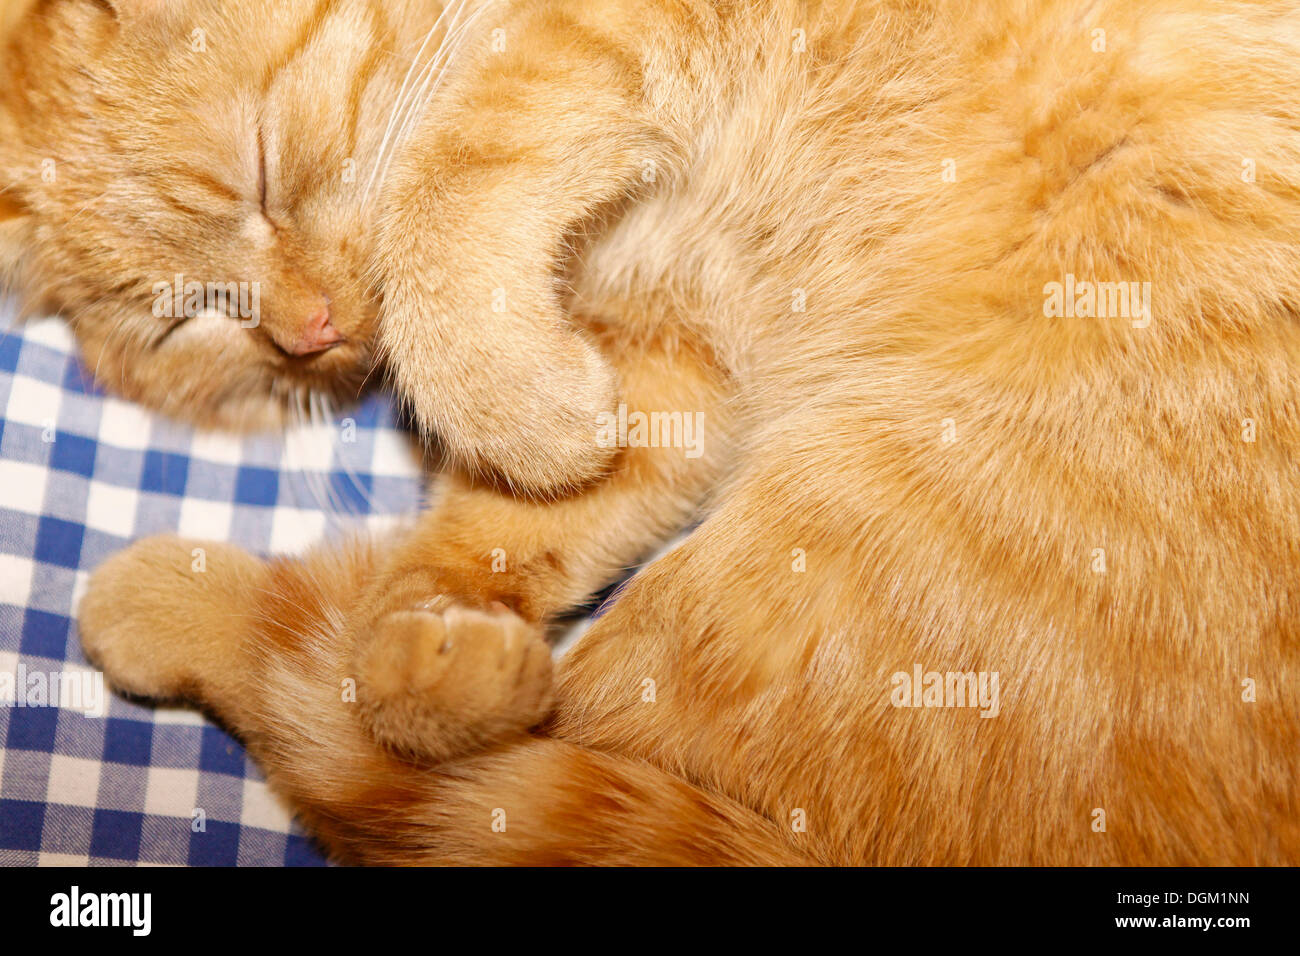 Tiger, house cat of the Carl-von-Stahl-House, a mountain hut from the Alpine Club on the border of Berchtesgaden - Stock Image